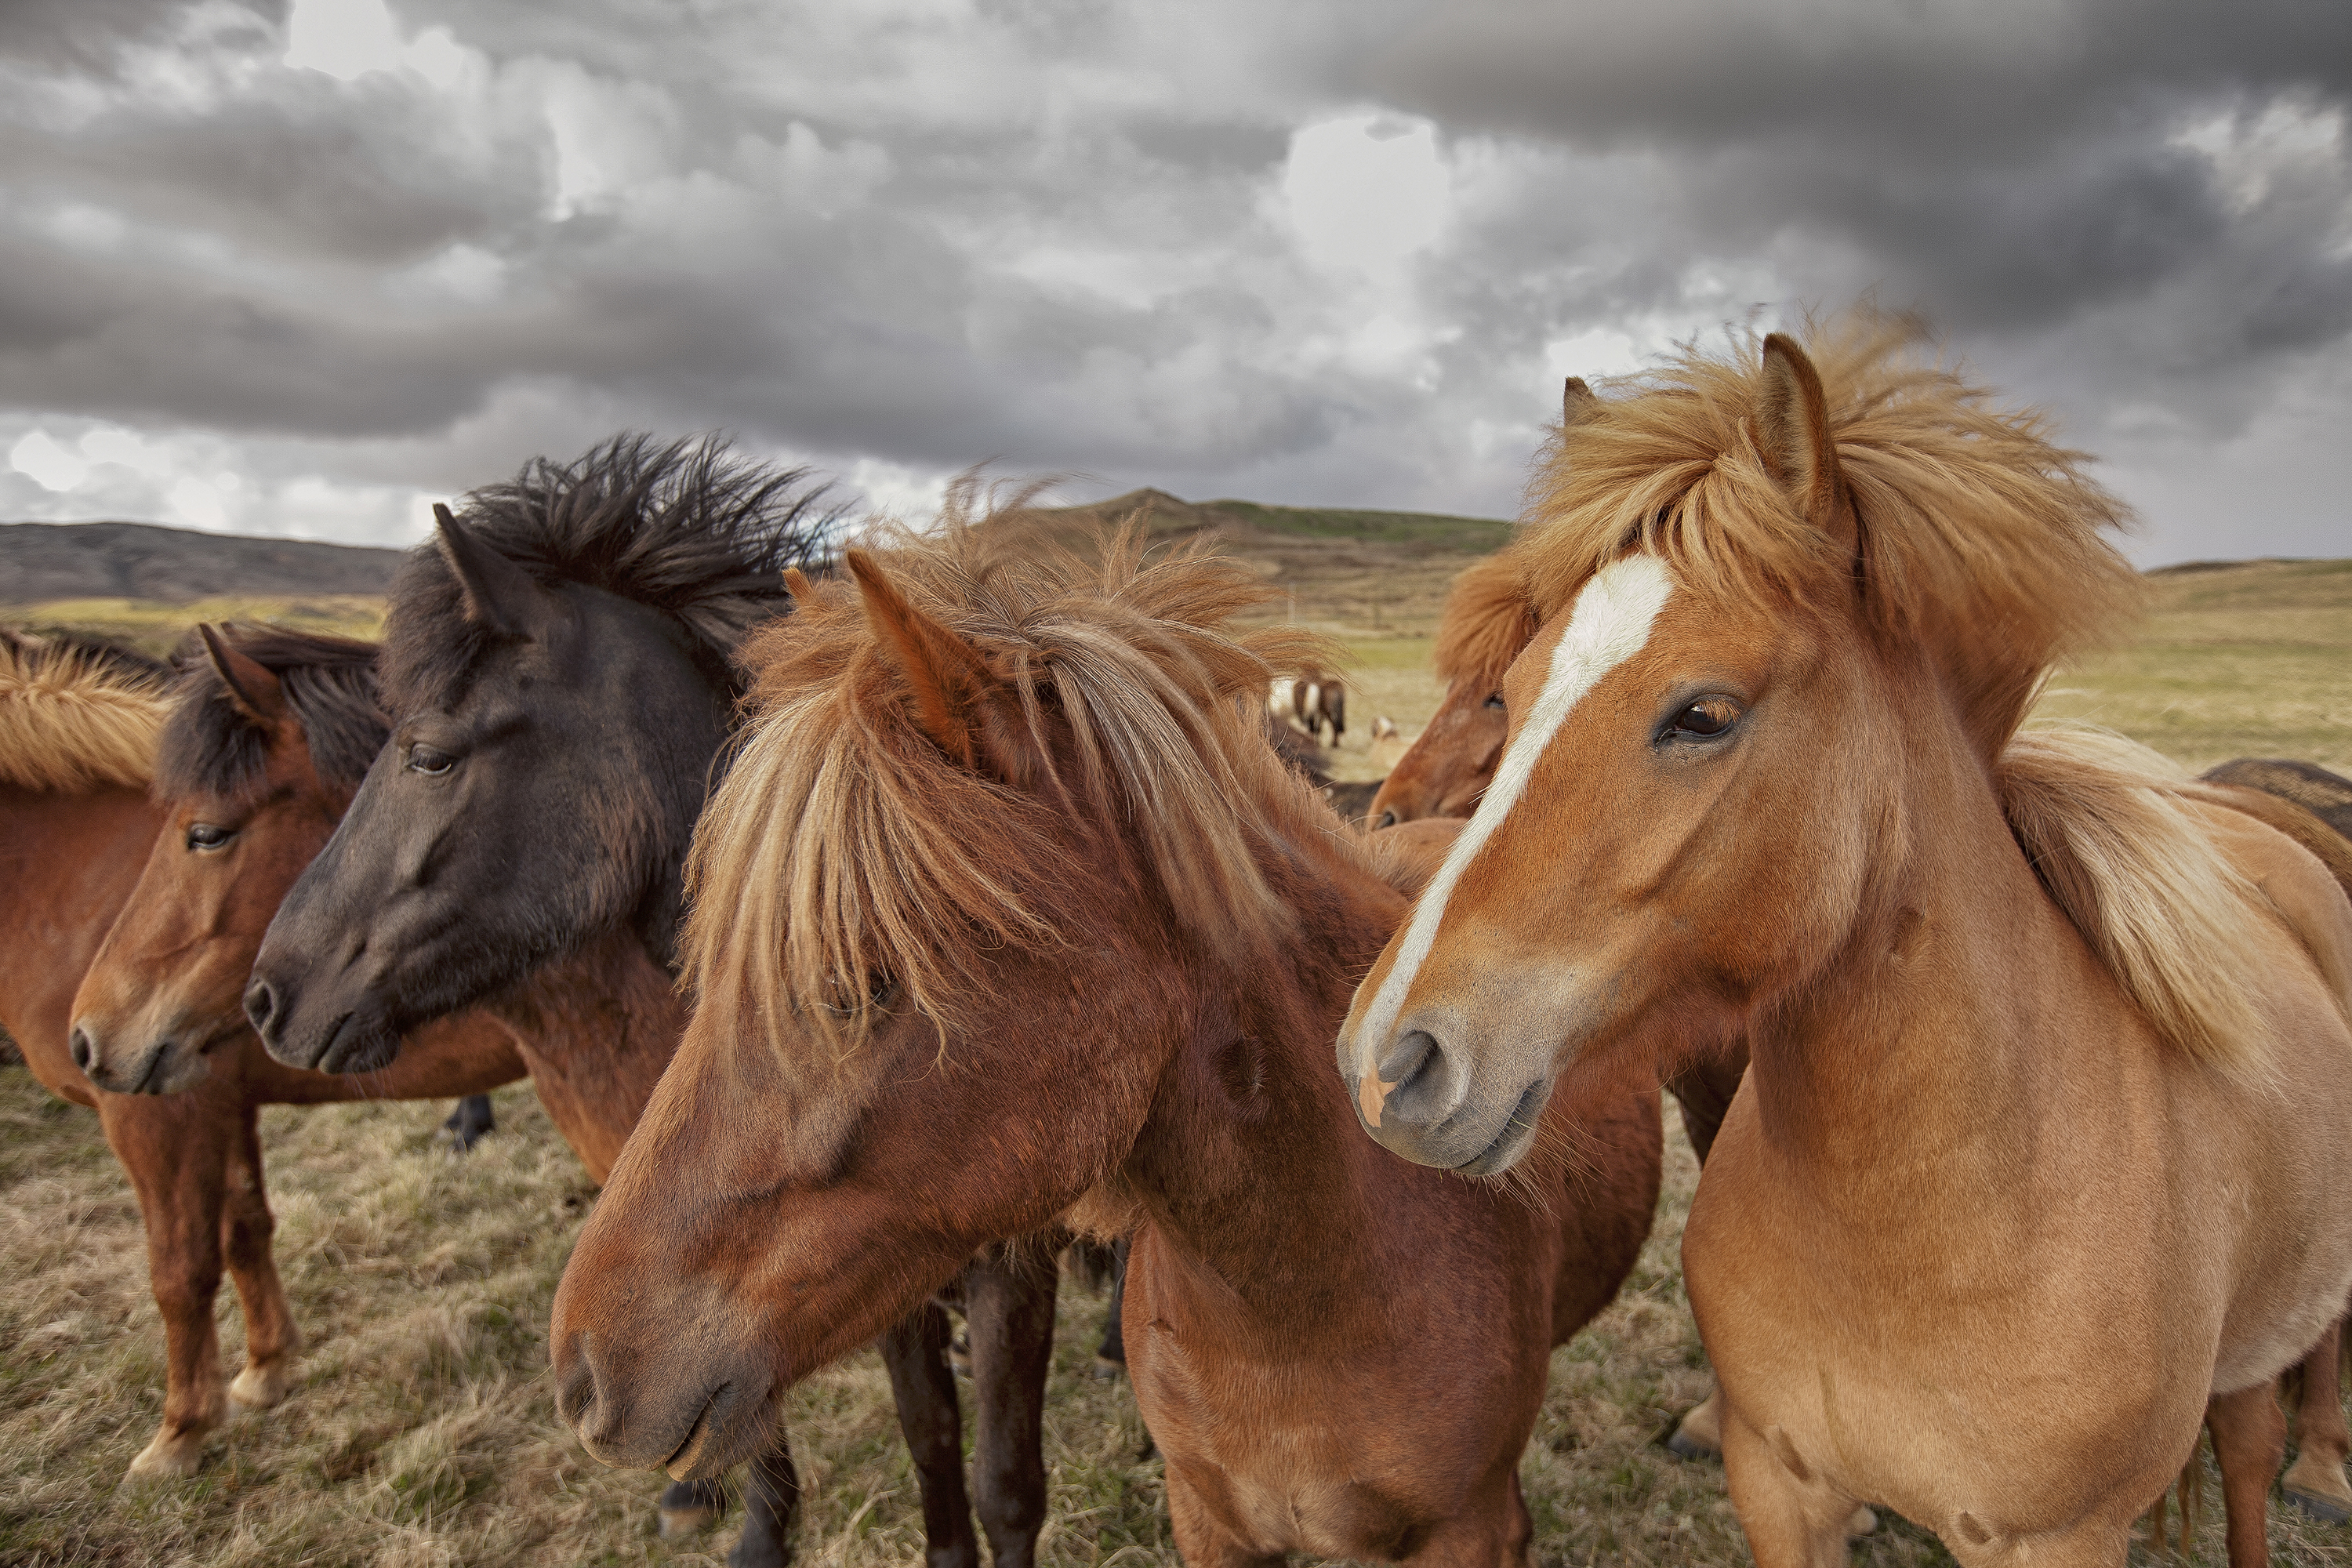 3 Day Animals of Iceland Tour with Horse Riding plus Whale & Puffin Watching near Reykjavik - day 1